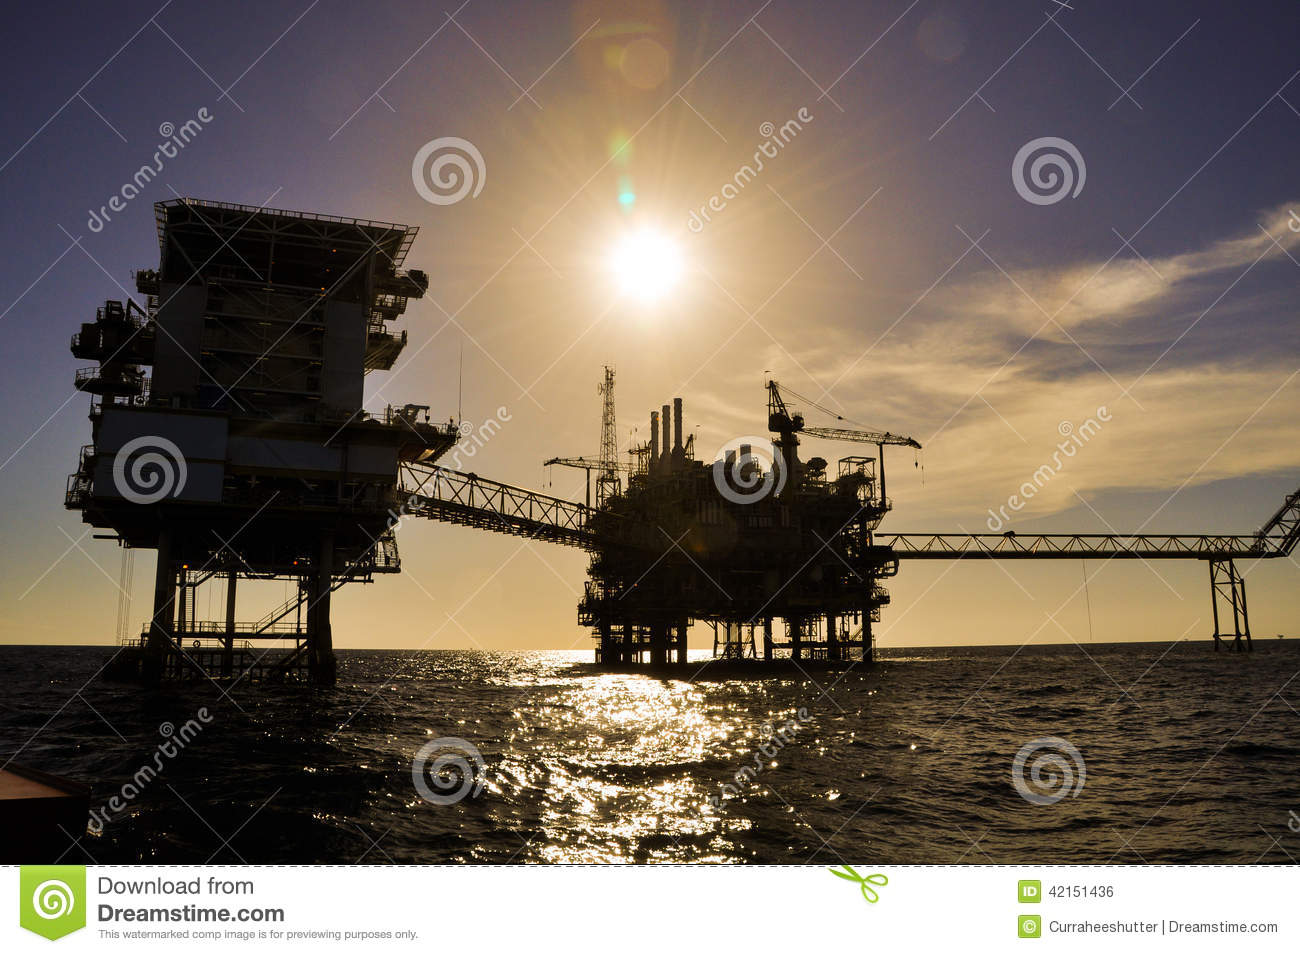 Oil and gas platform in the gulf or the sea, The world energy, Offshore oil and rig construction Platform for production